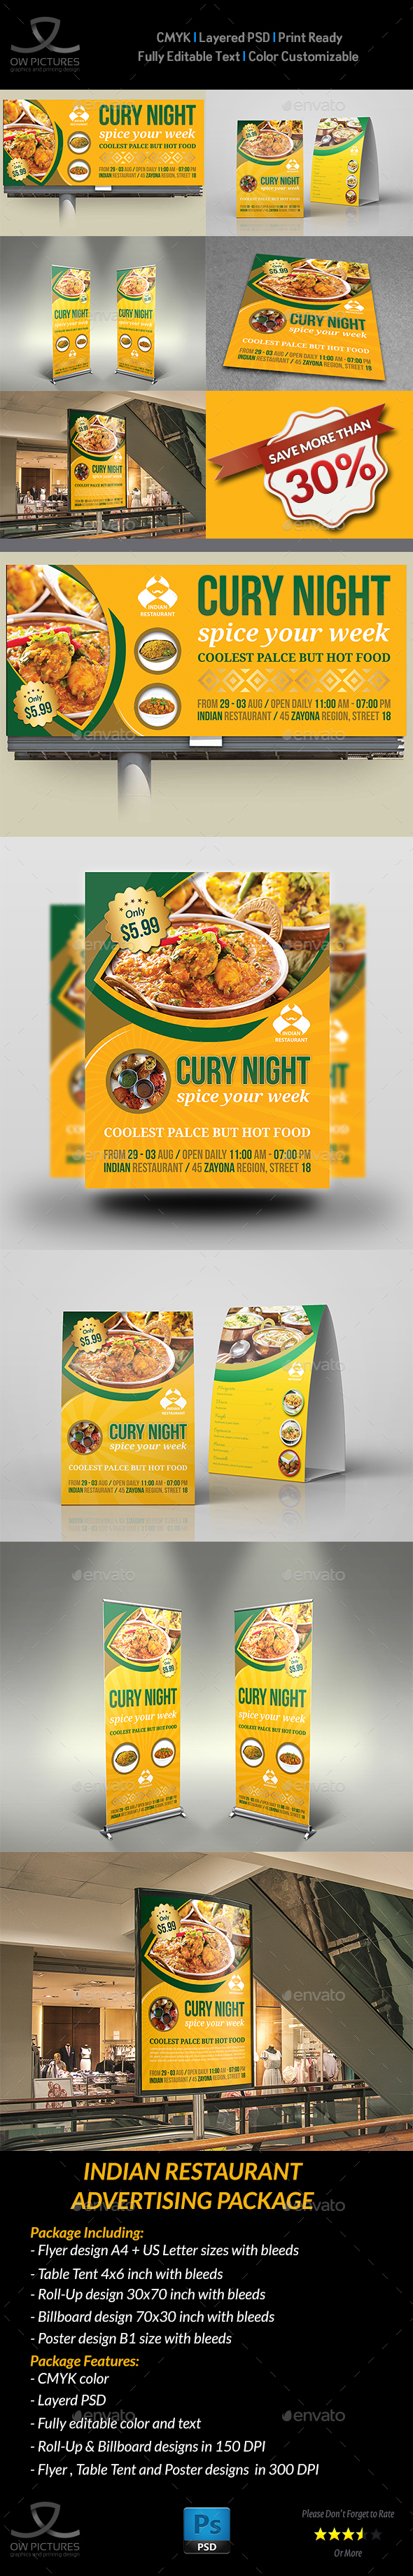 Indian Restaurant Advertising Bundle Template - Signage Print Templates